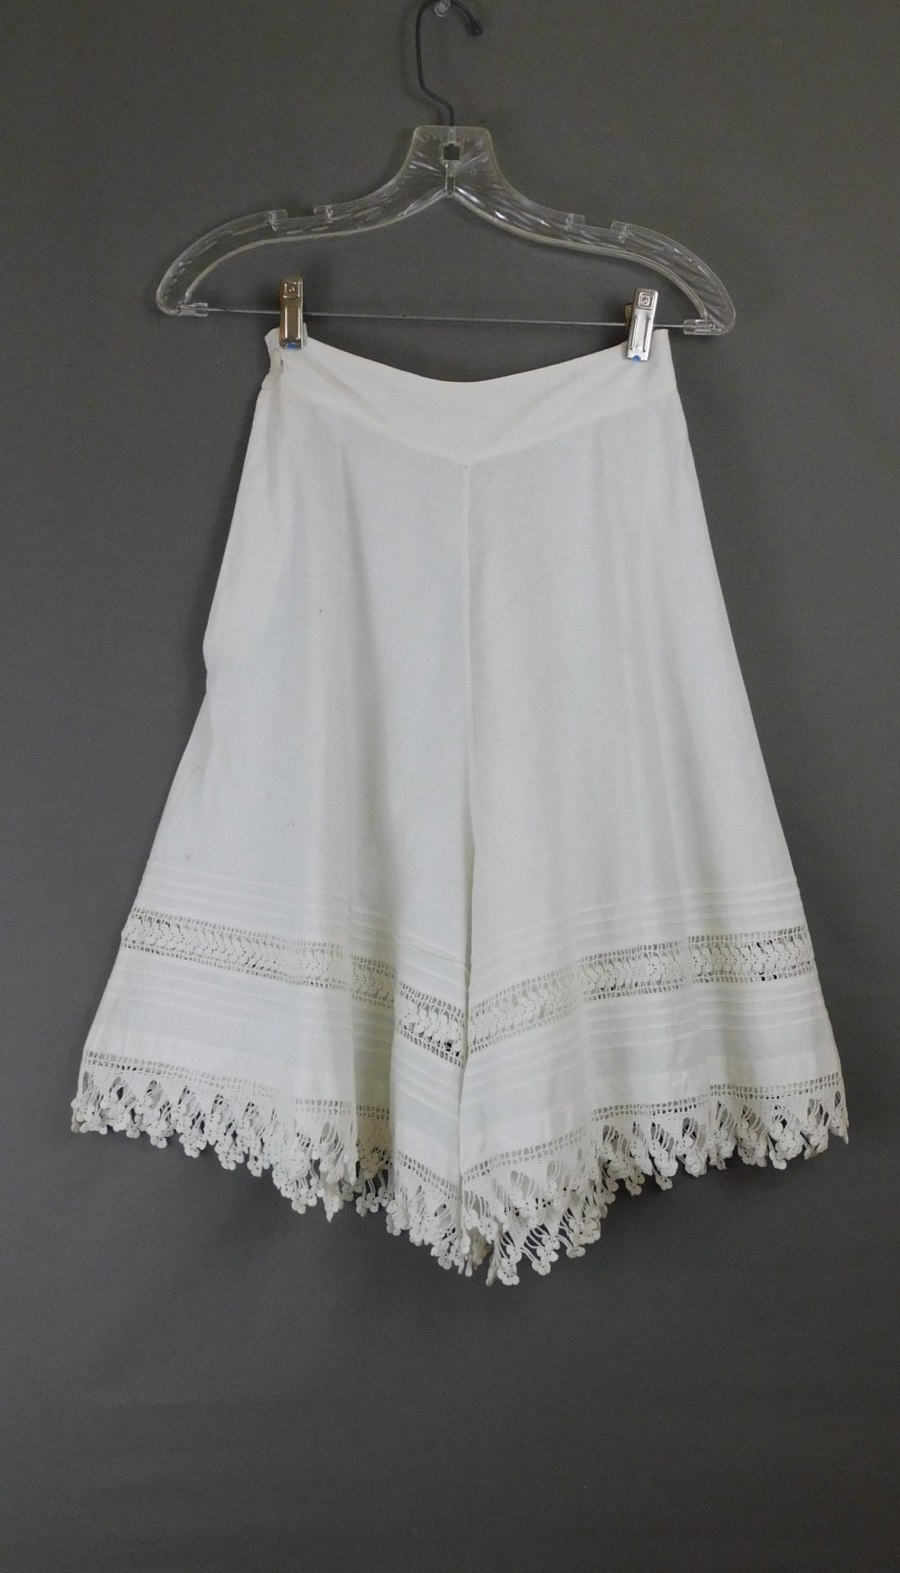 Vintage Edwardian Bloomers with Wide Legs, 1900s Antique, 23-1/2 inch waist